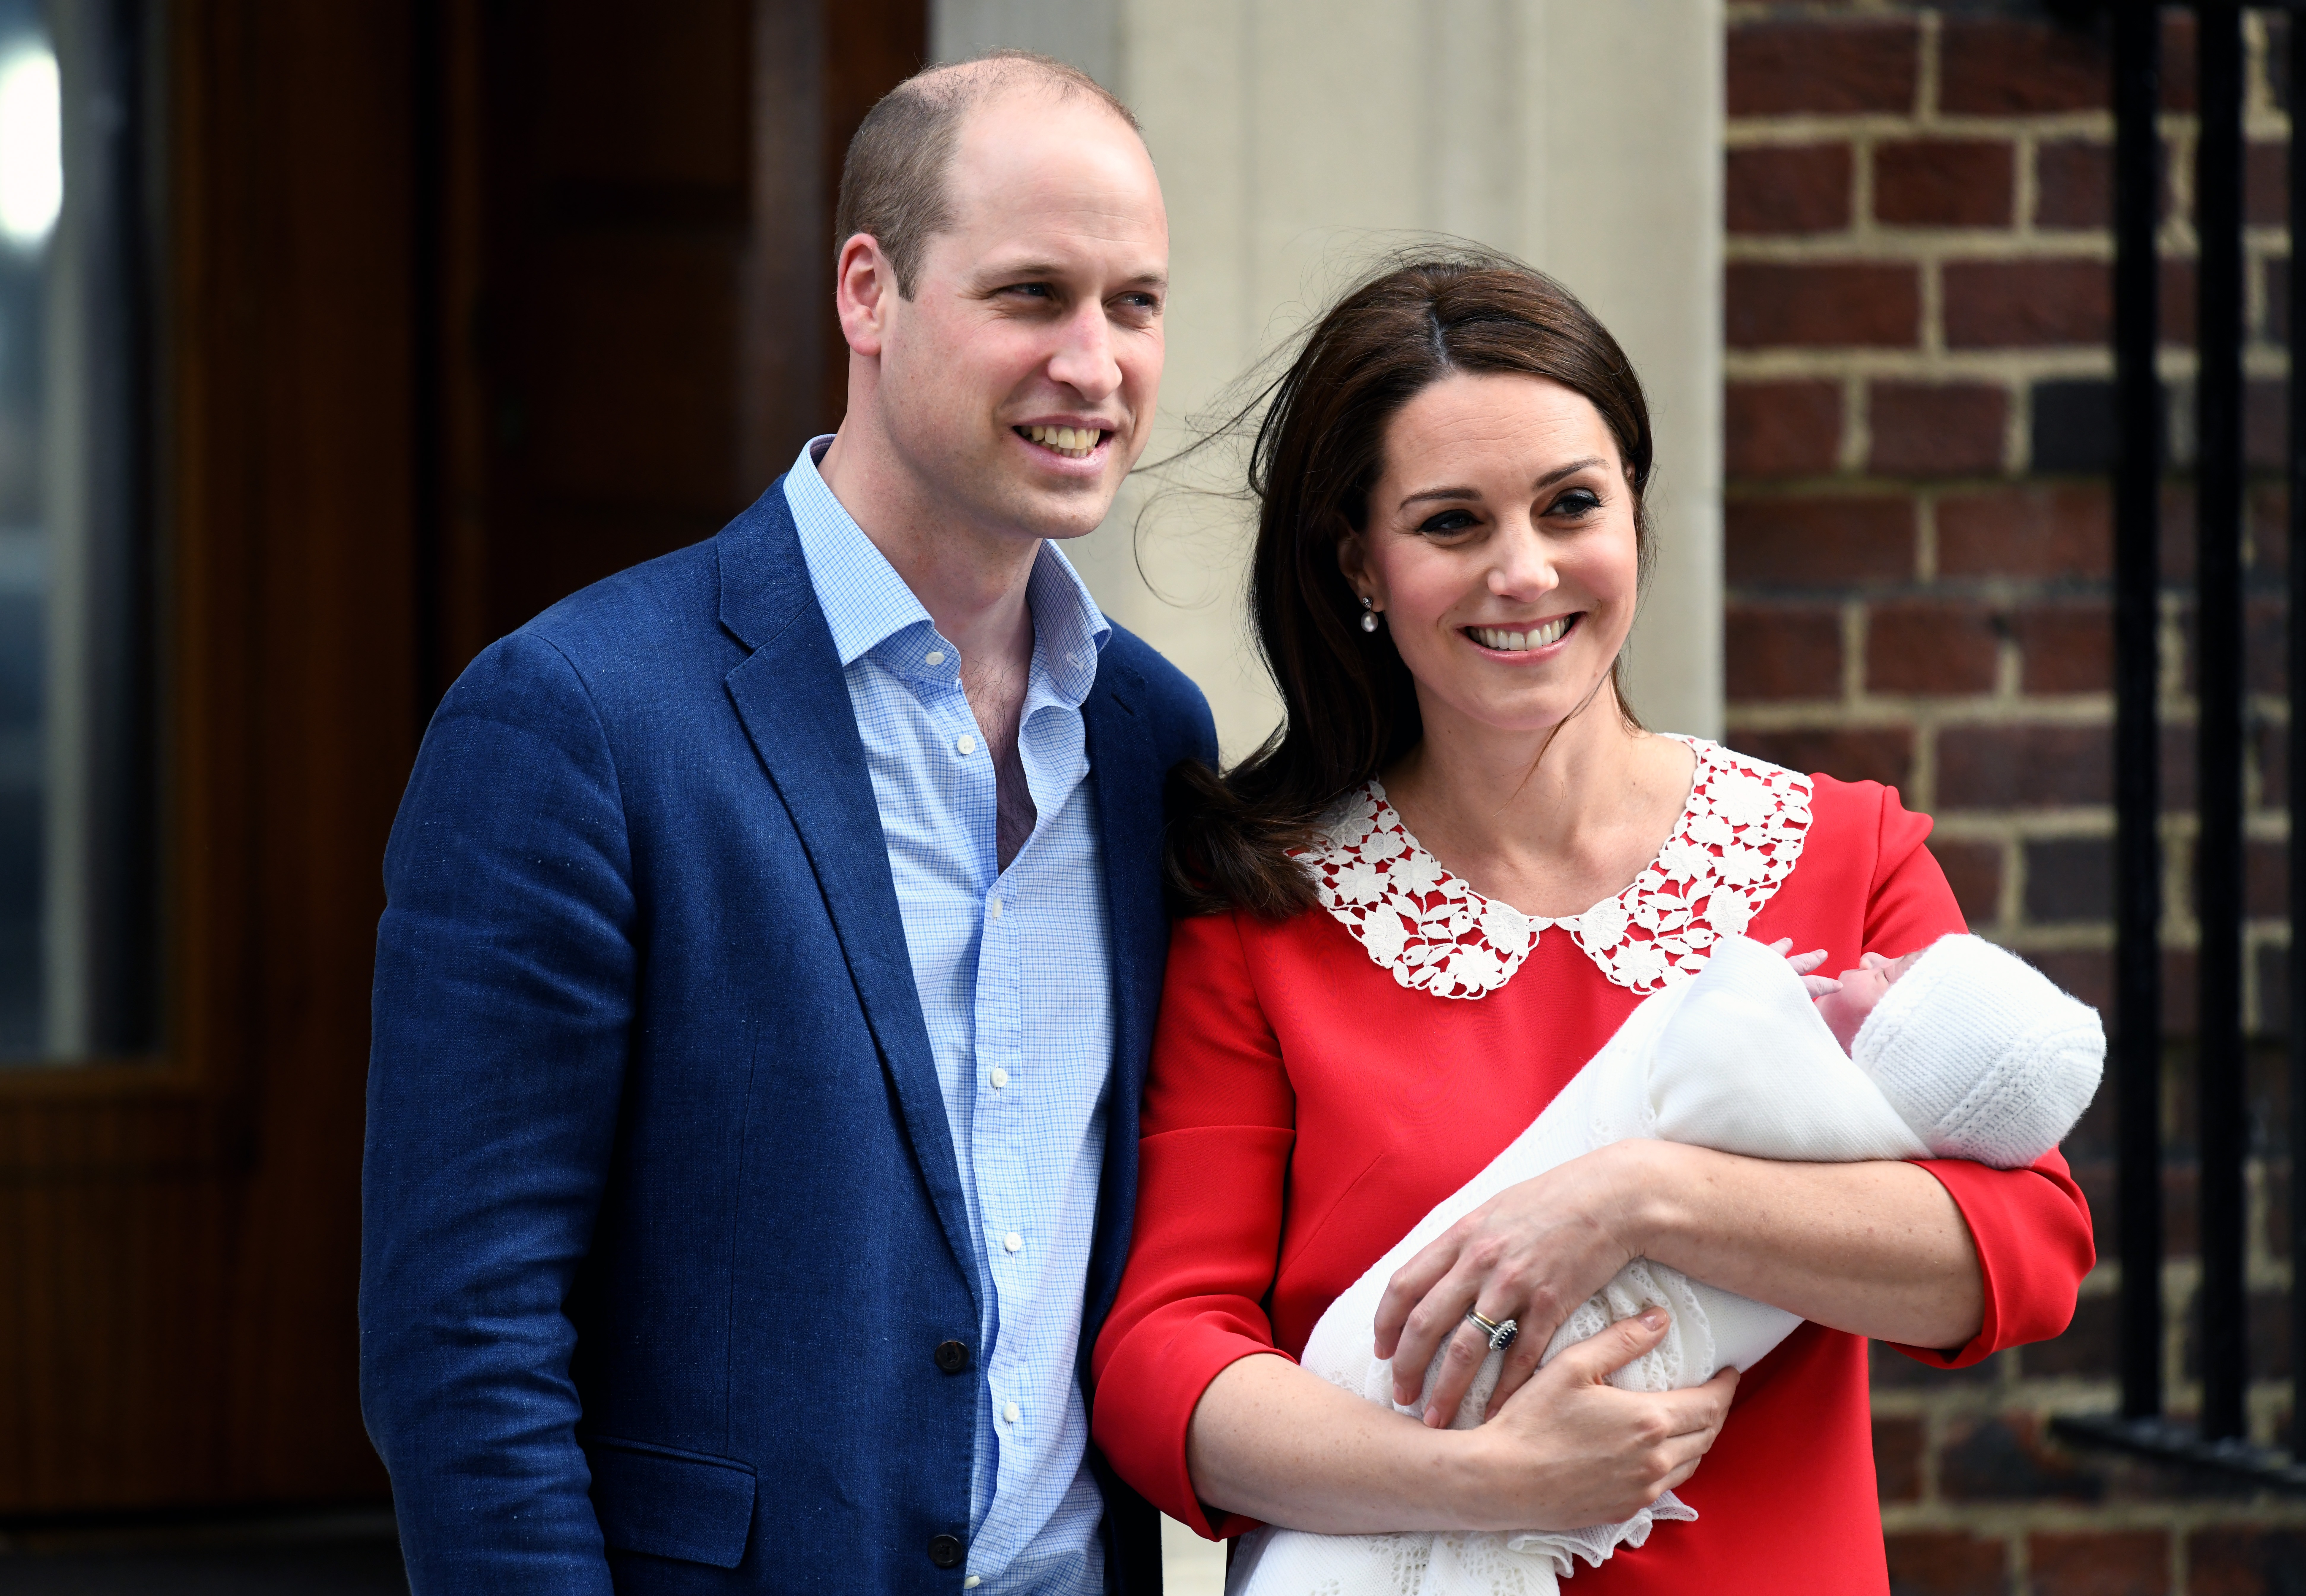 Prince William, Duke of Cambridge and Catherine, Duchess of Cambridge leave St. Mary's Hospital with their newborn son Prince Louis of Cambridge.